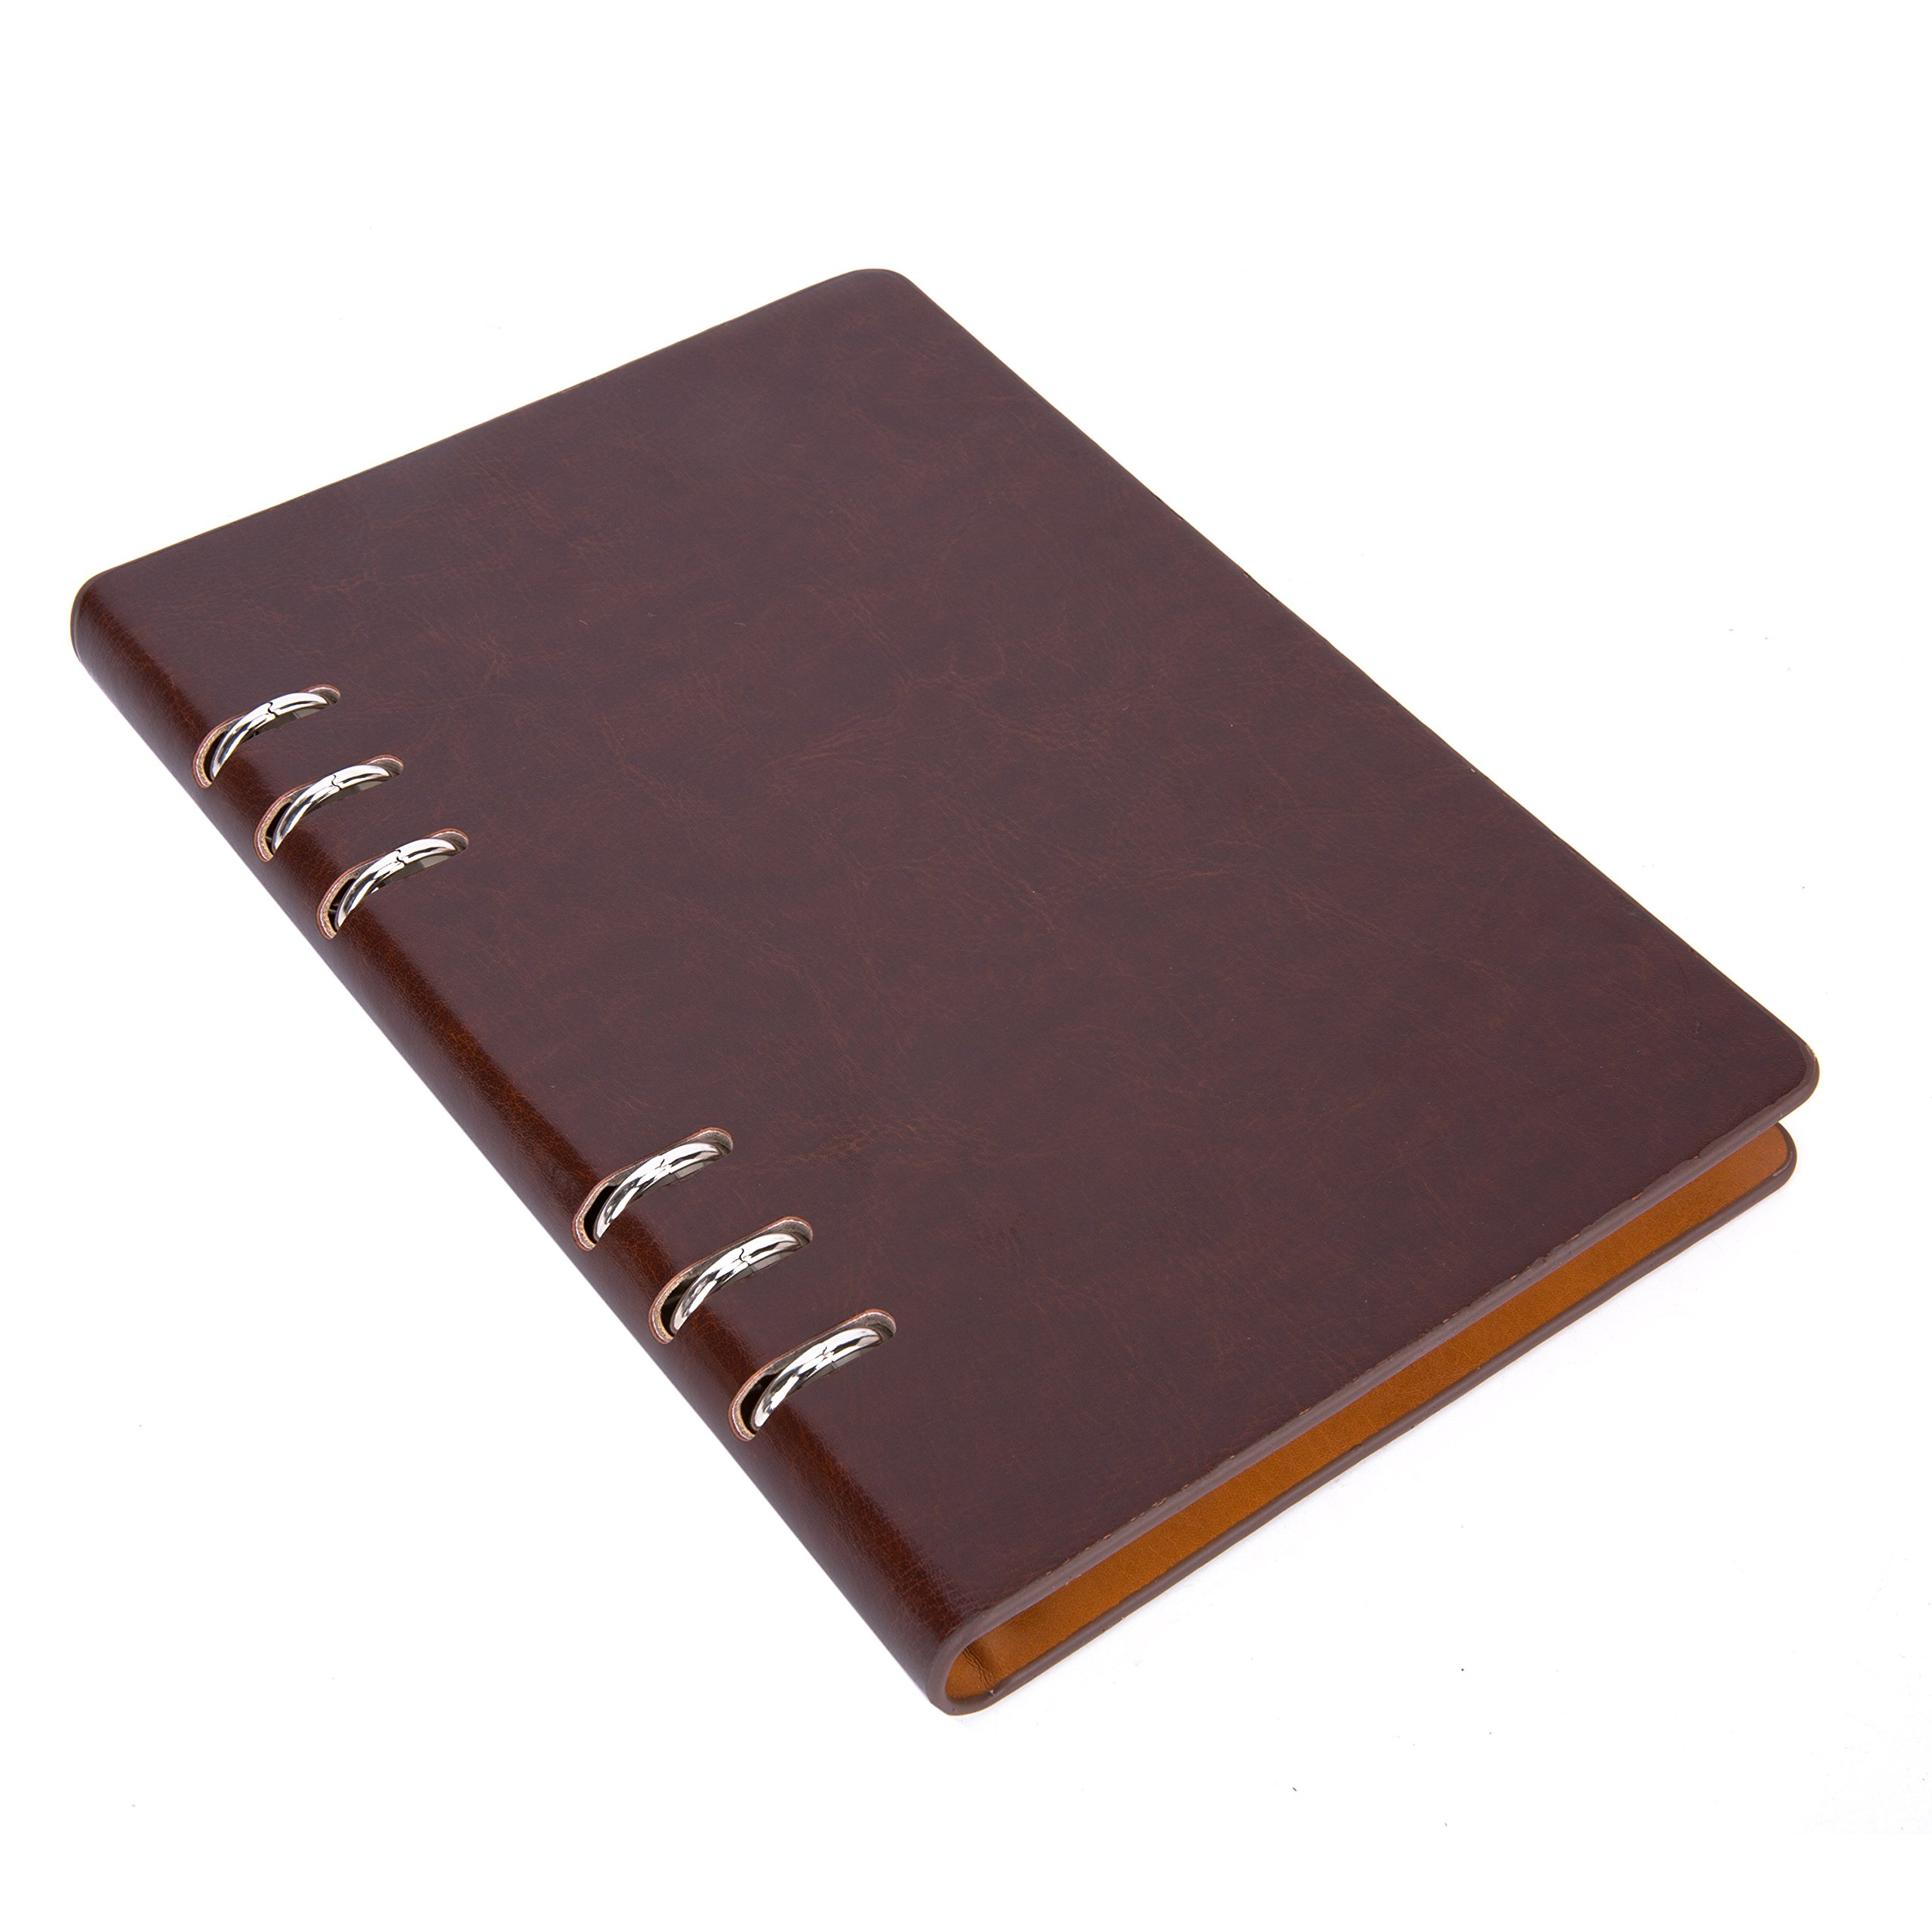 Spiral Bound Notebook A5, UBaymax Premium PU Leather Hardcover Personal Executive Journal Planner Lined Paper for Office School Dark Brown